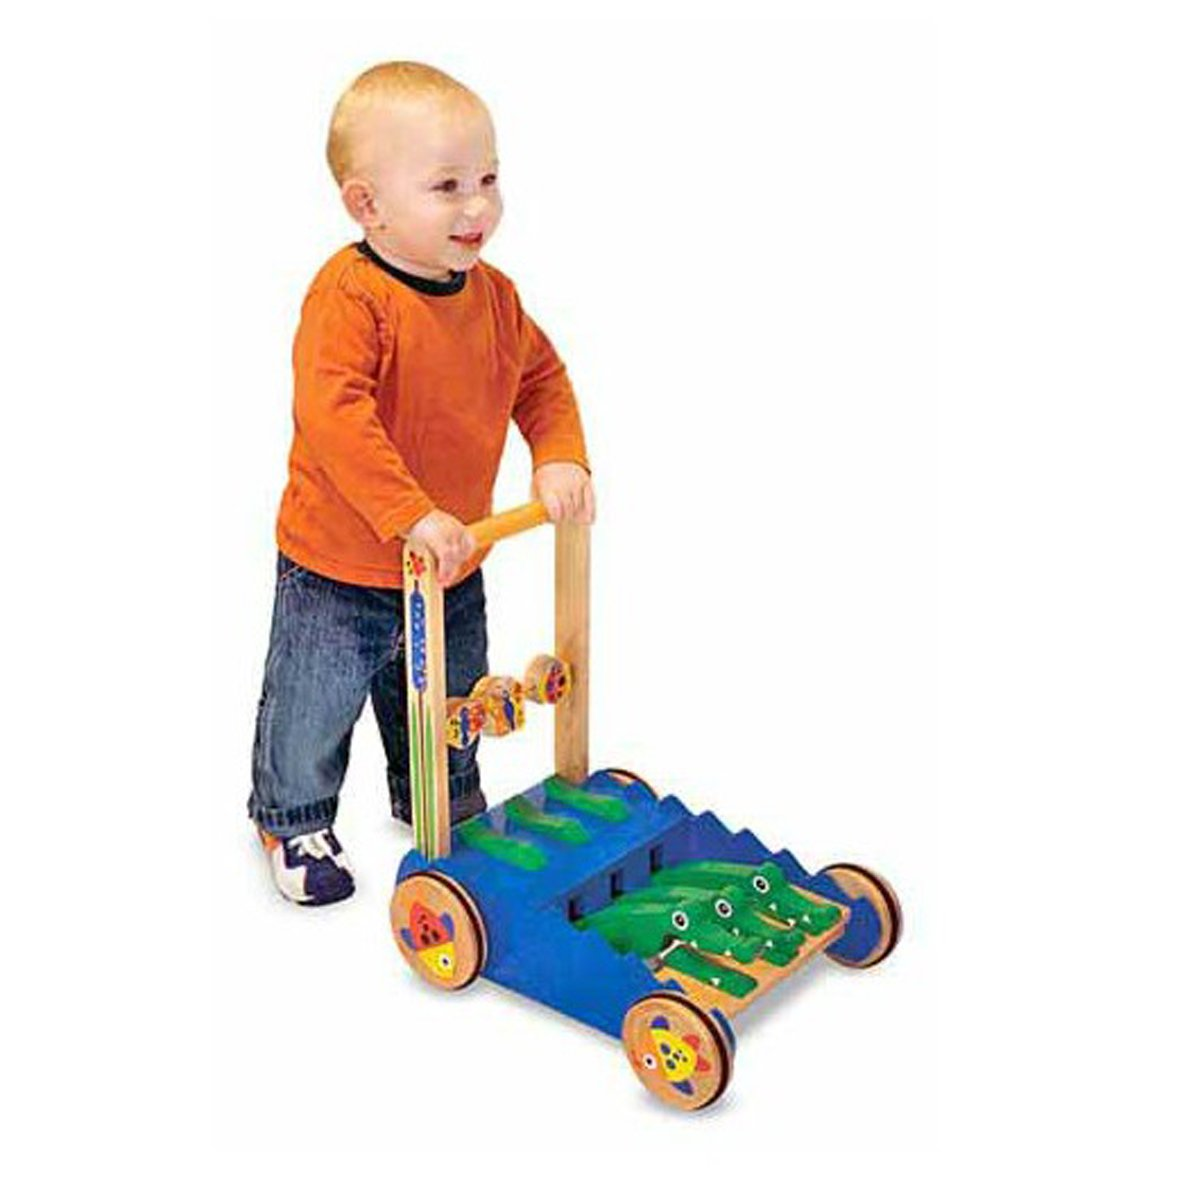 Push And Pull Toys : Push toy wooden pull toys toddler melissa doug baby walker